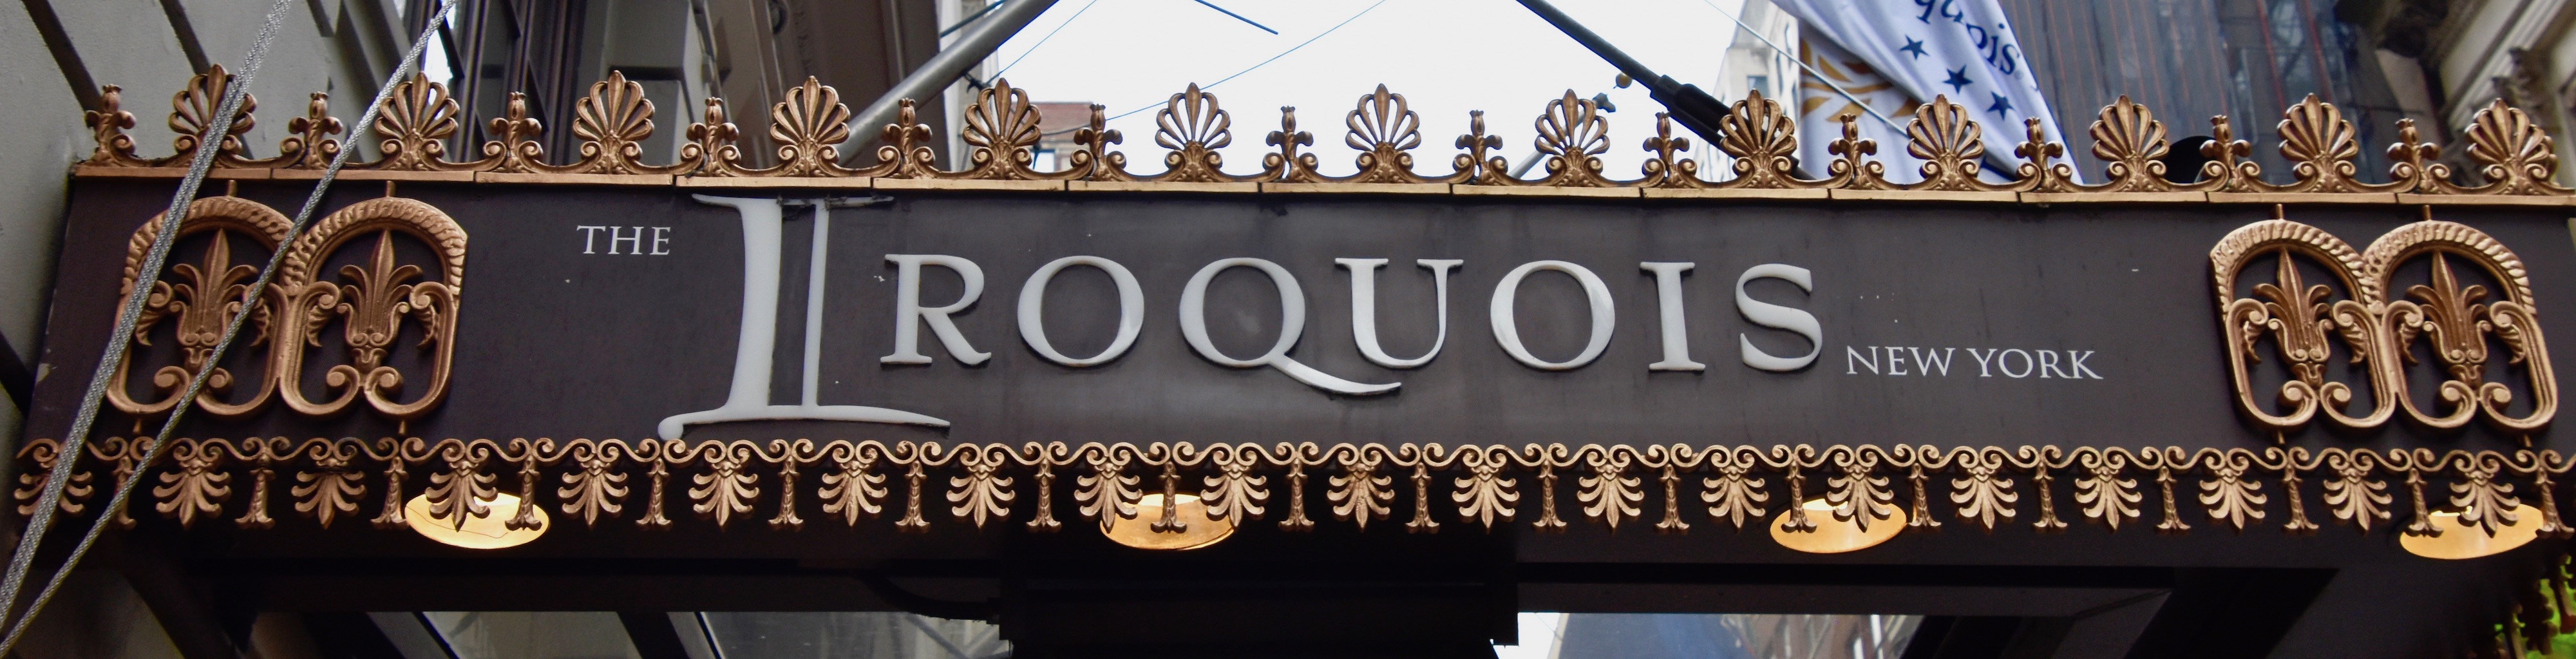 The Iroquois Location Is Everything In Nyc The Maritime Explorer